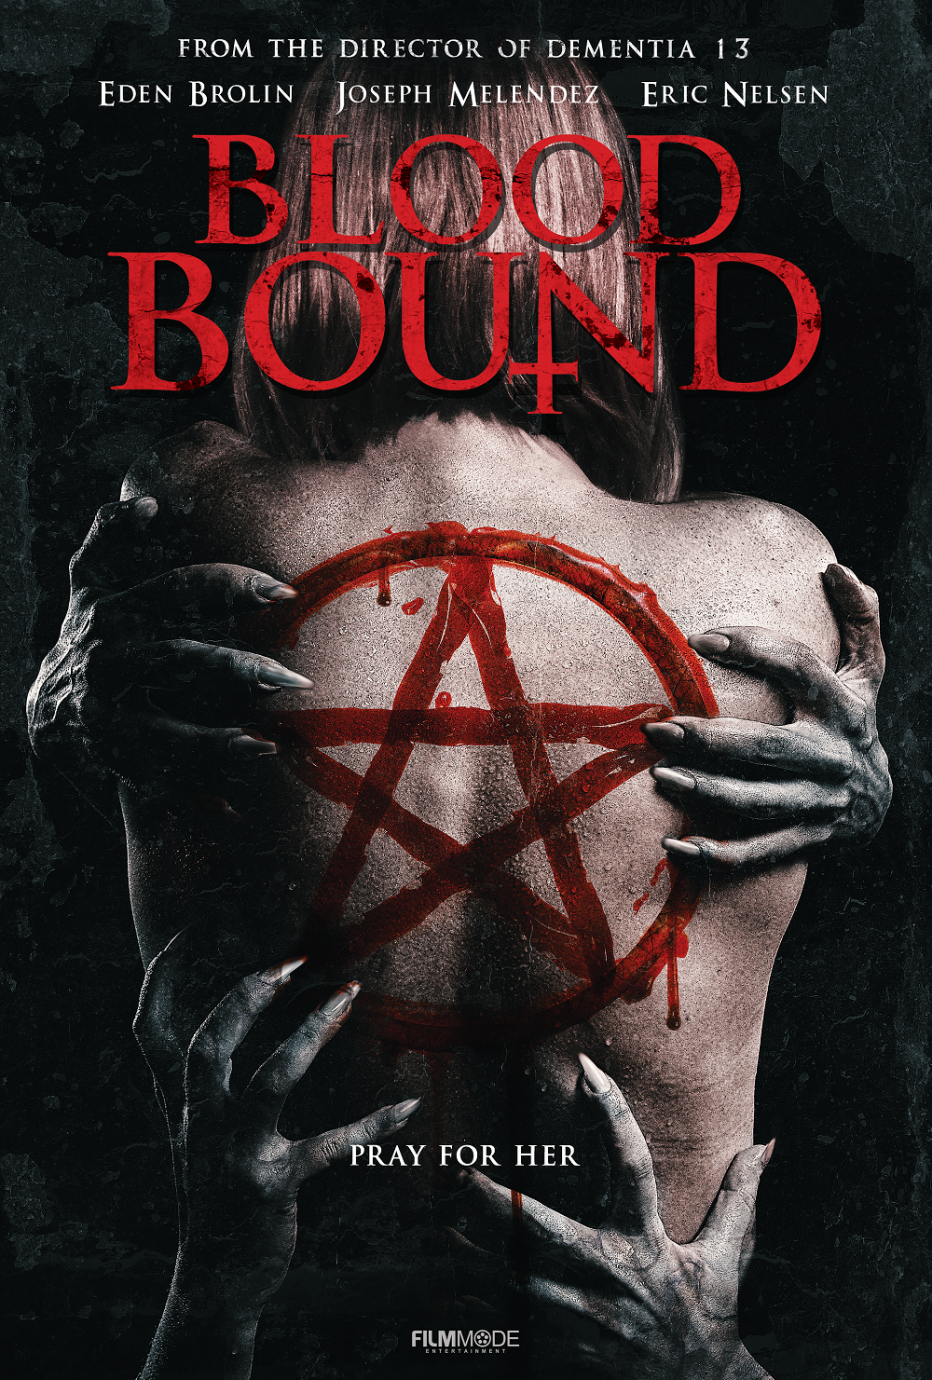 Official Trailer for BLOOD BOUND, from the director of Dementia 13, out this January